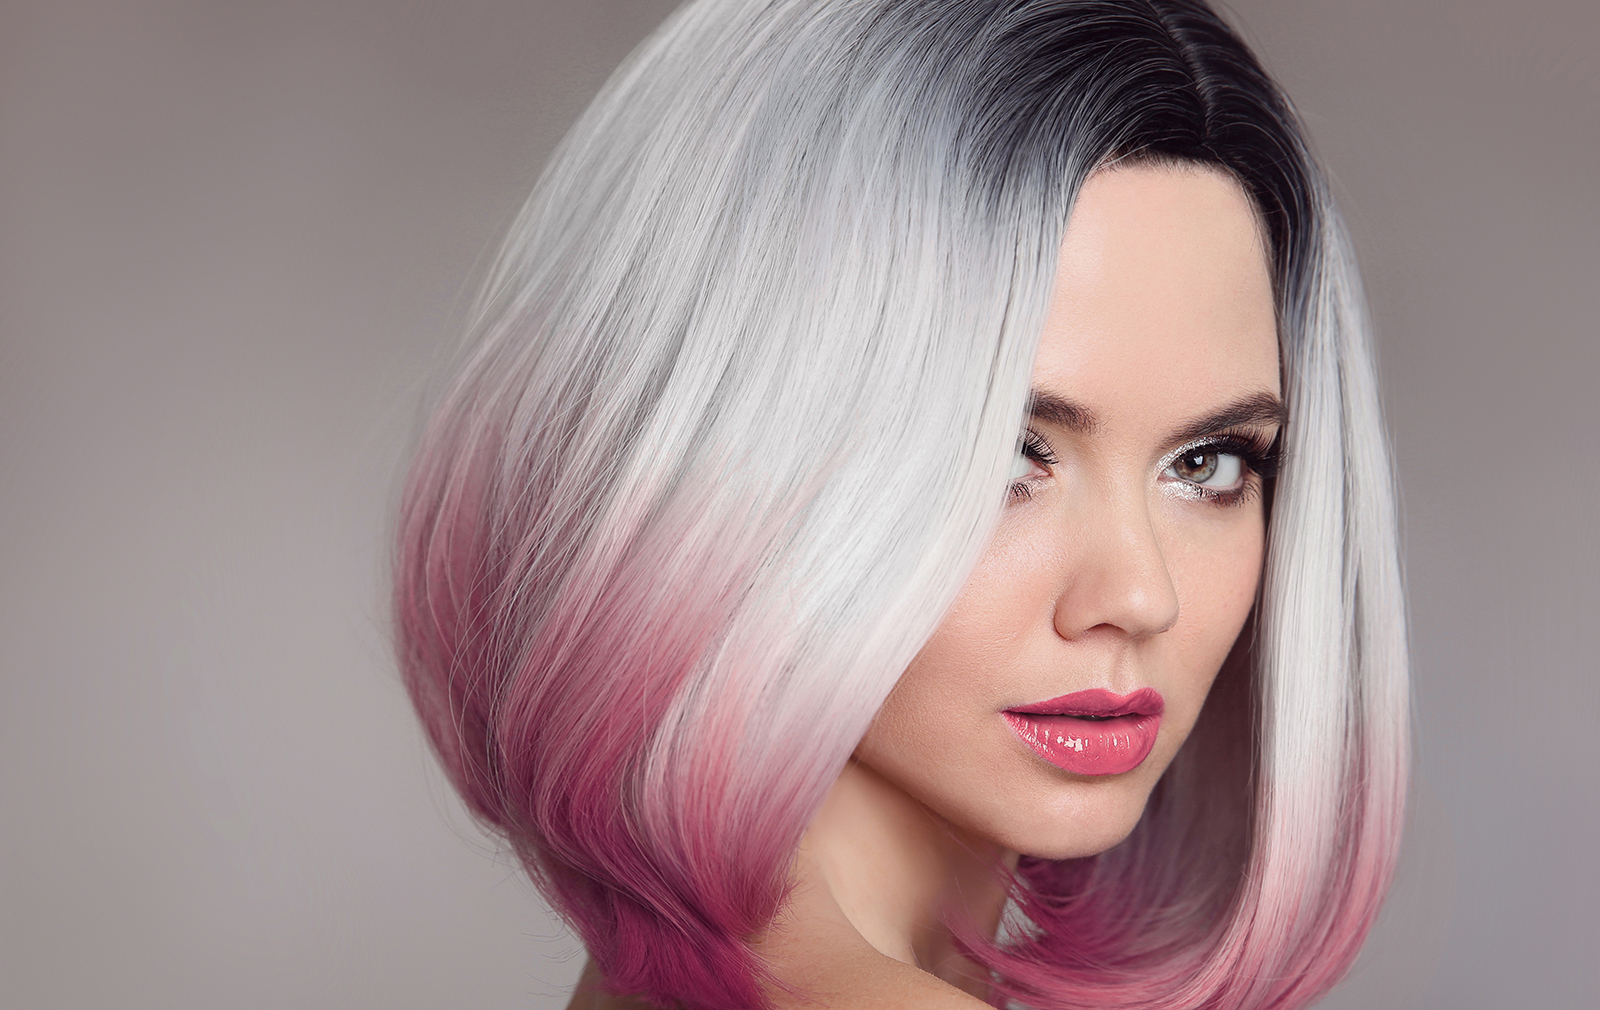 hair-trends-hair-color-trends-celebrity-style